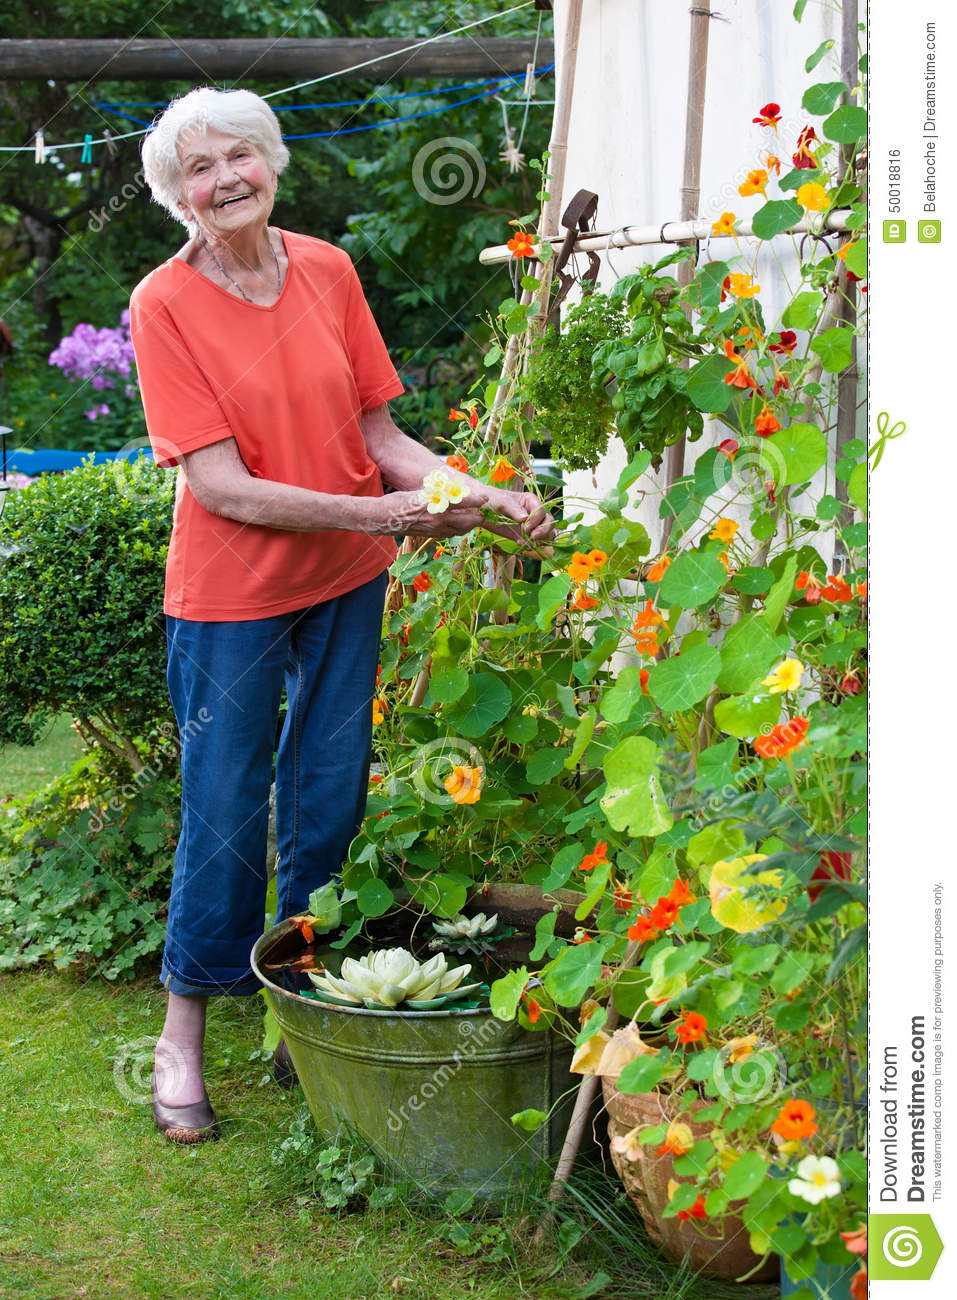 Full Garden In Backyard: Happy Old Woman Taking Care Her Flower Garden Stock Photo